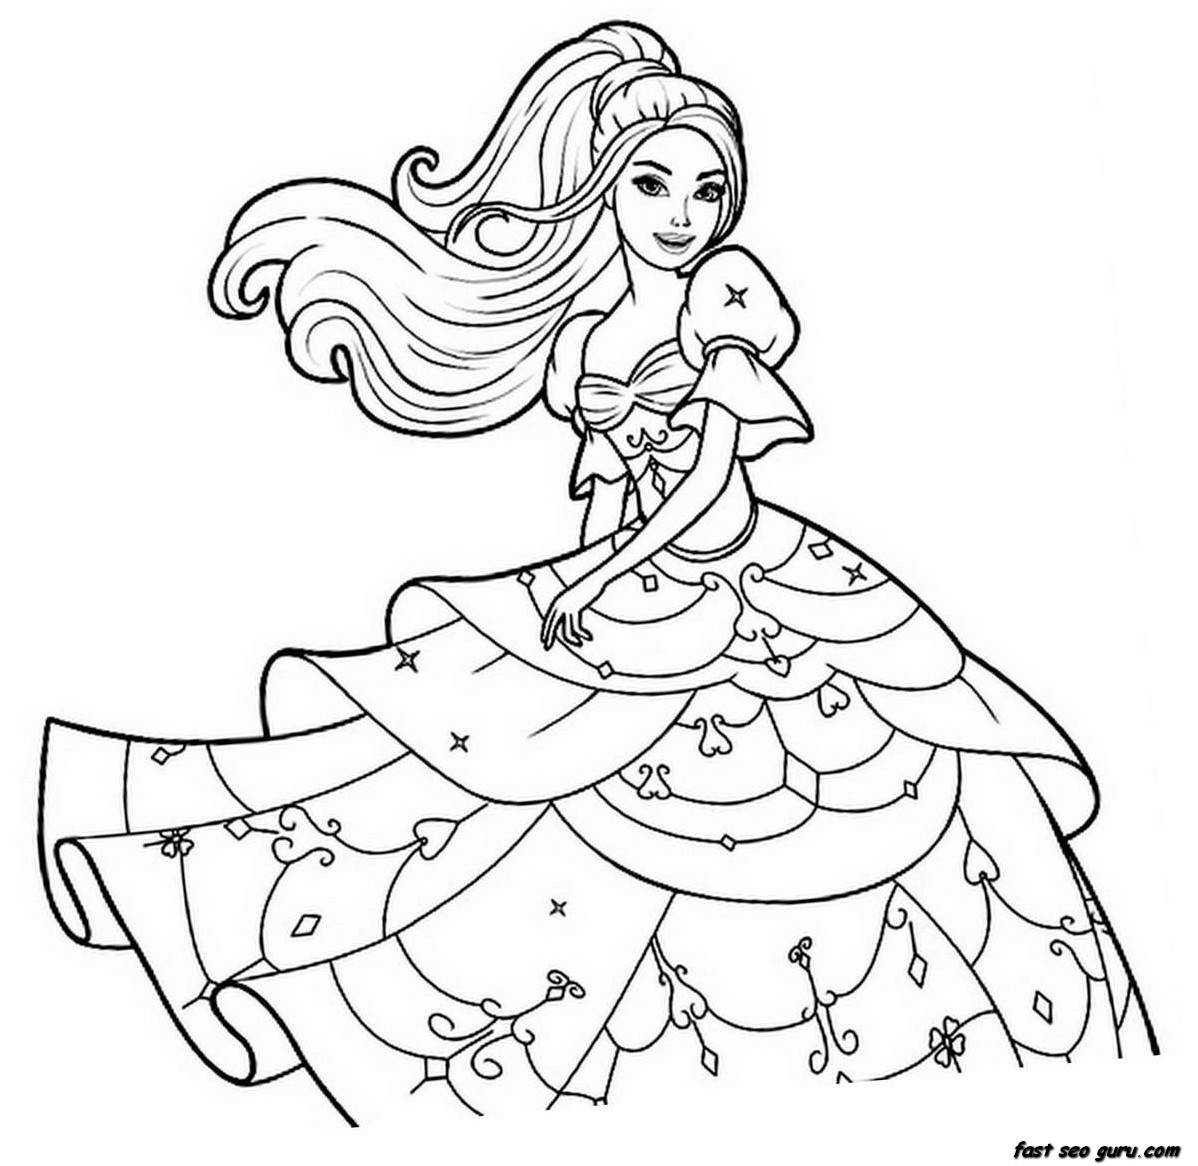 Best ideas about Free Coloring Pages For Girls To Print . Save or Pin coloring pages for girls Now.